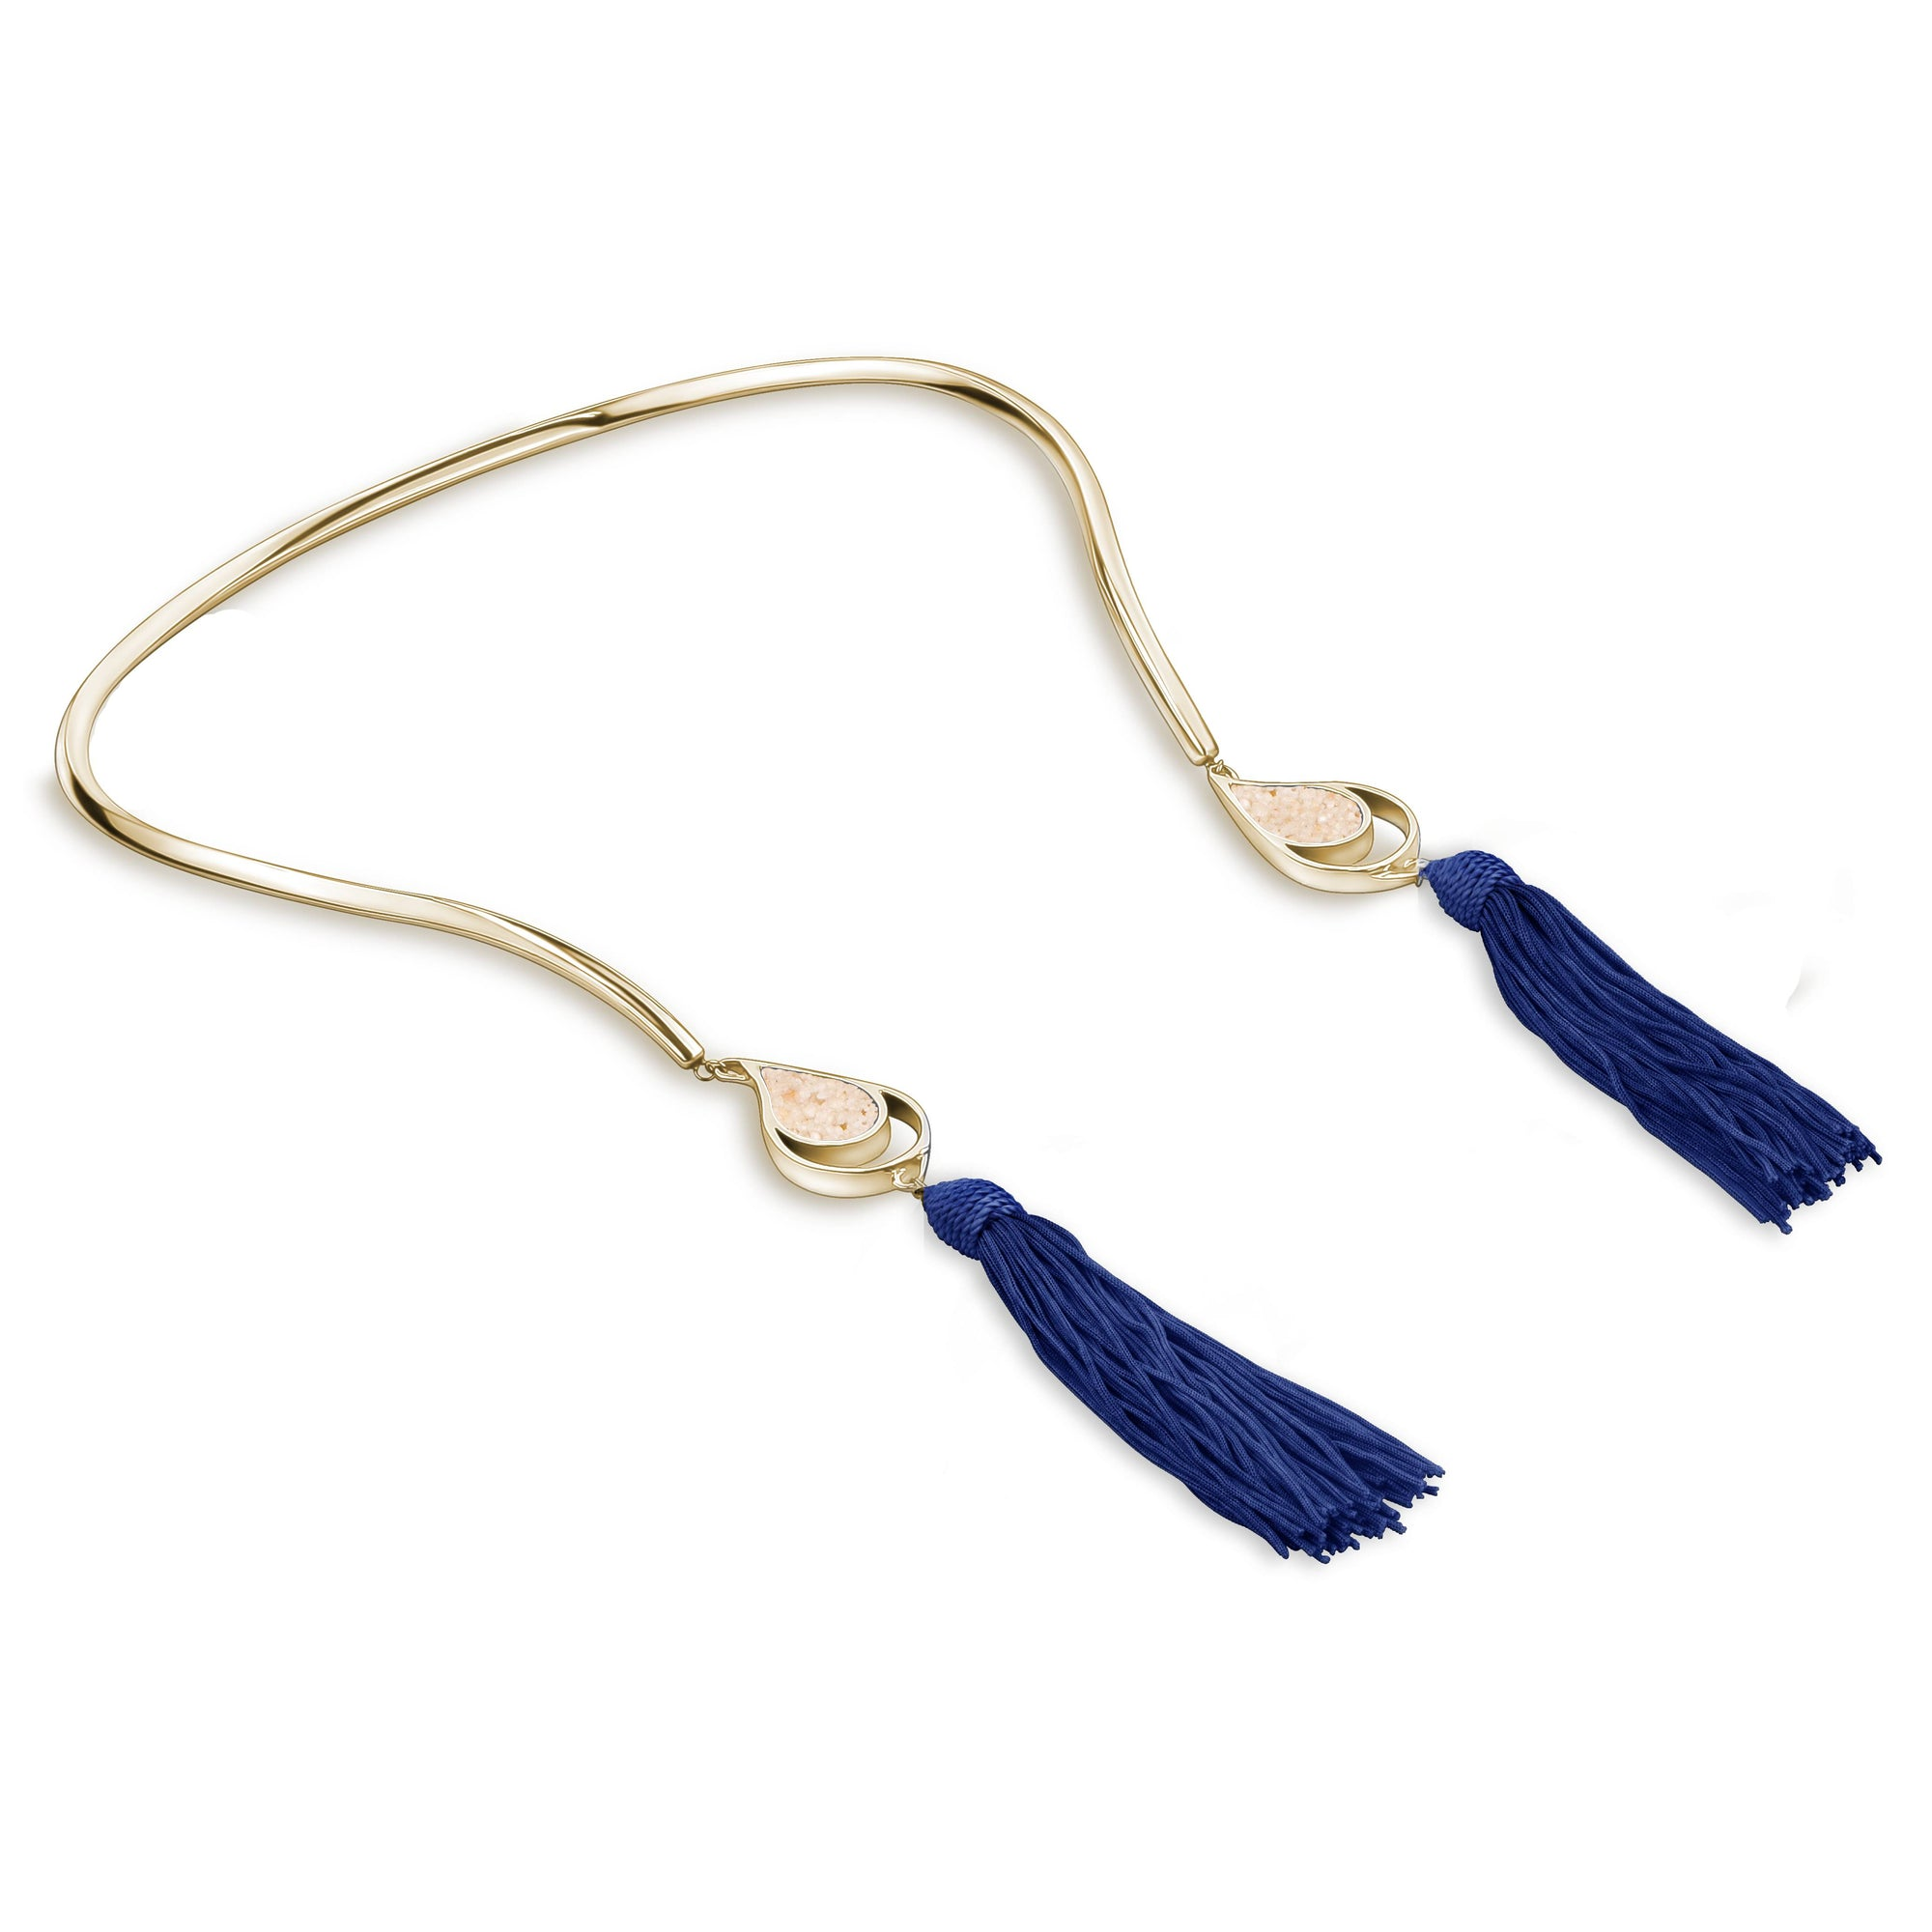 GOLD OPEN CHOKER NAVY TASSELS